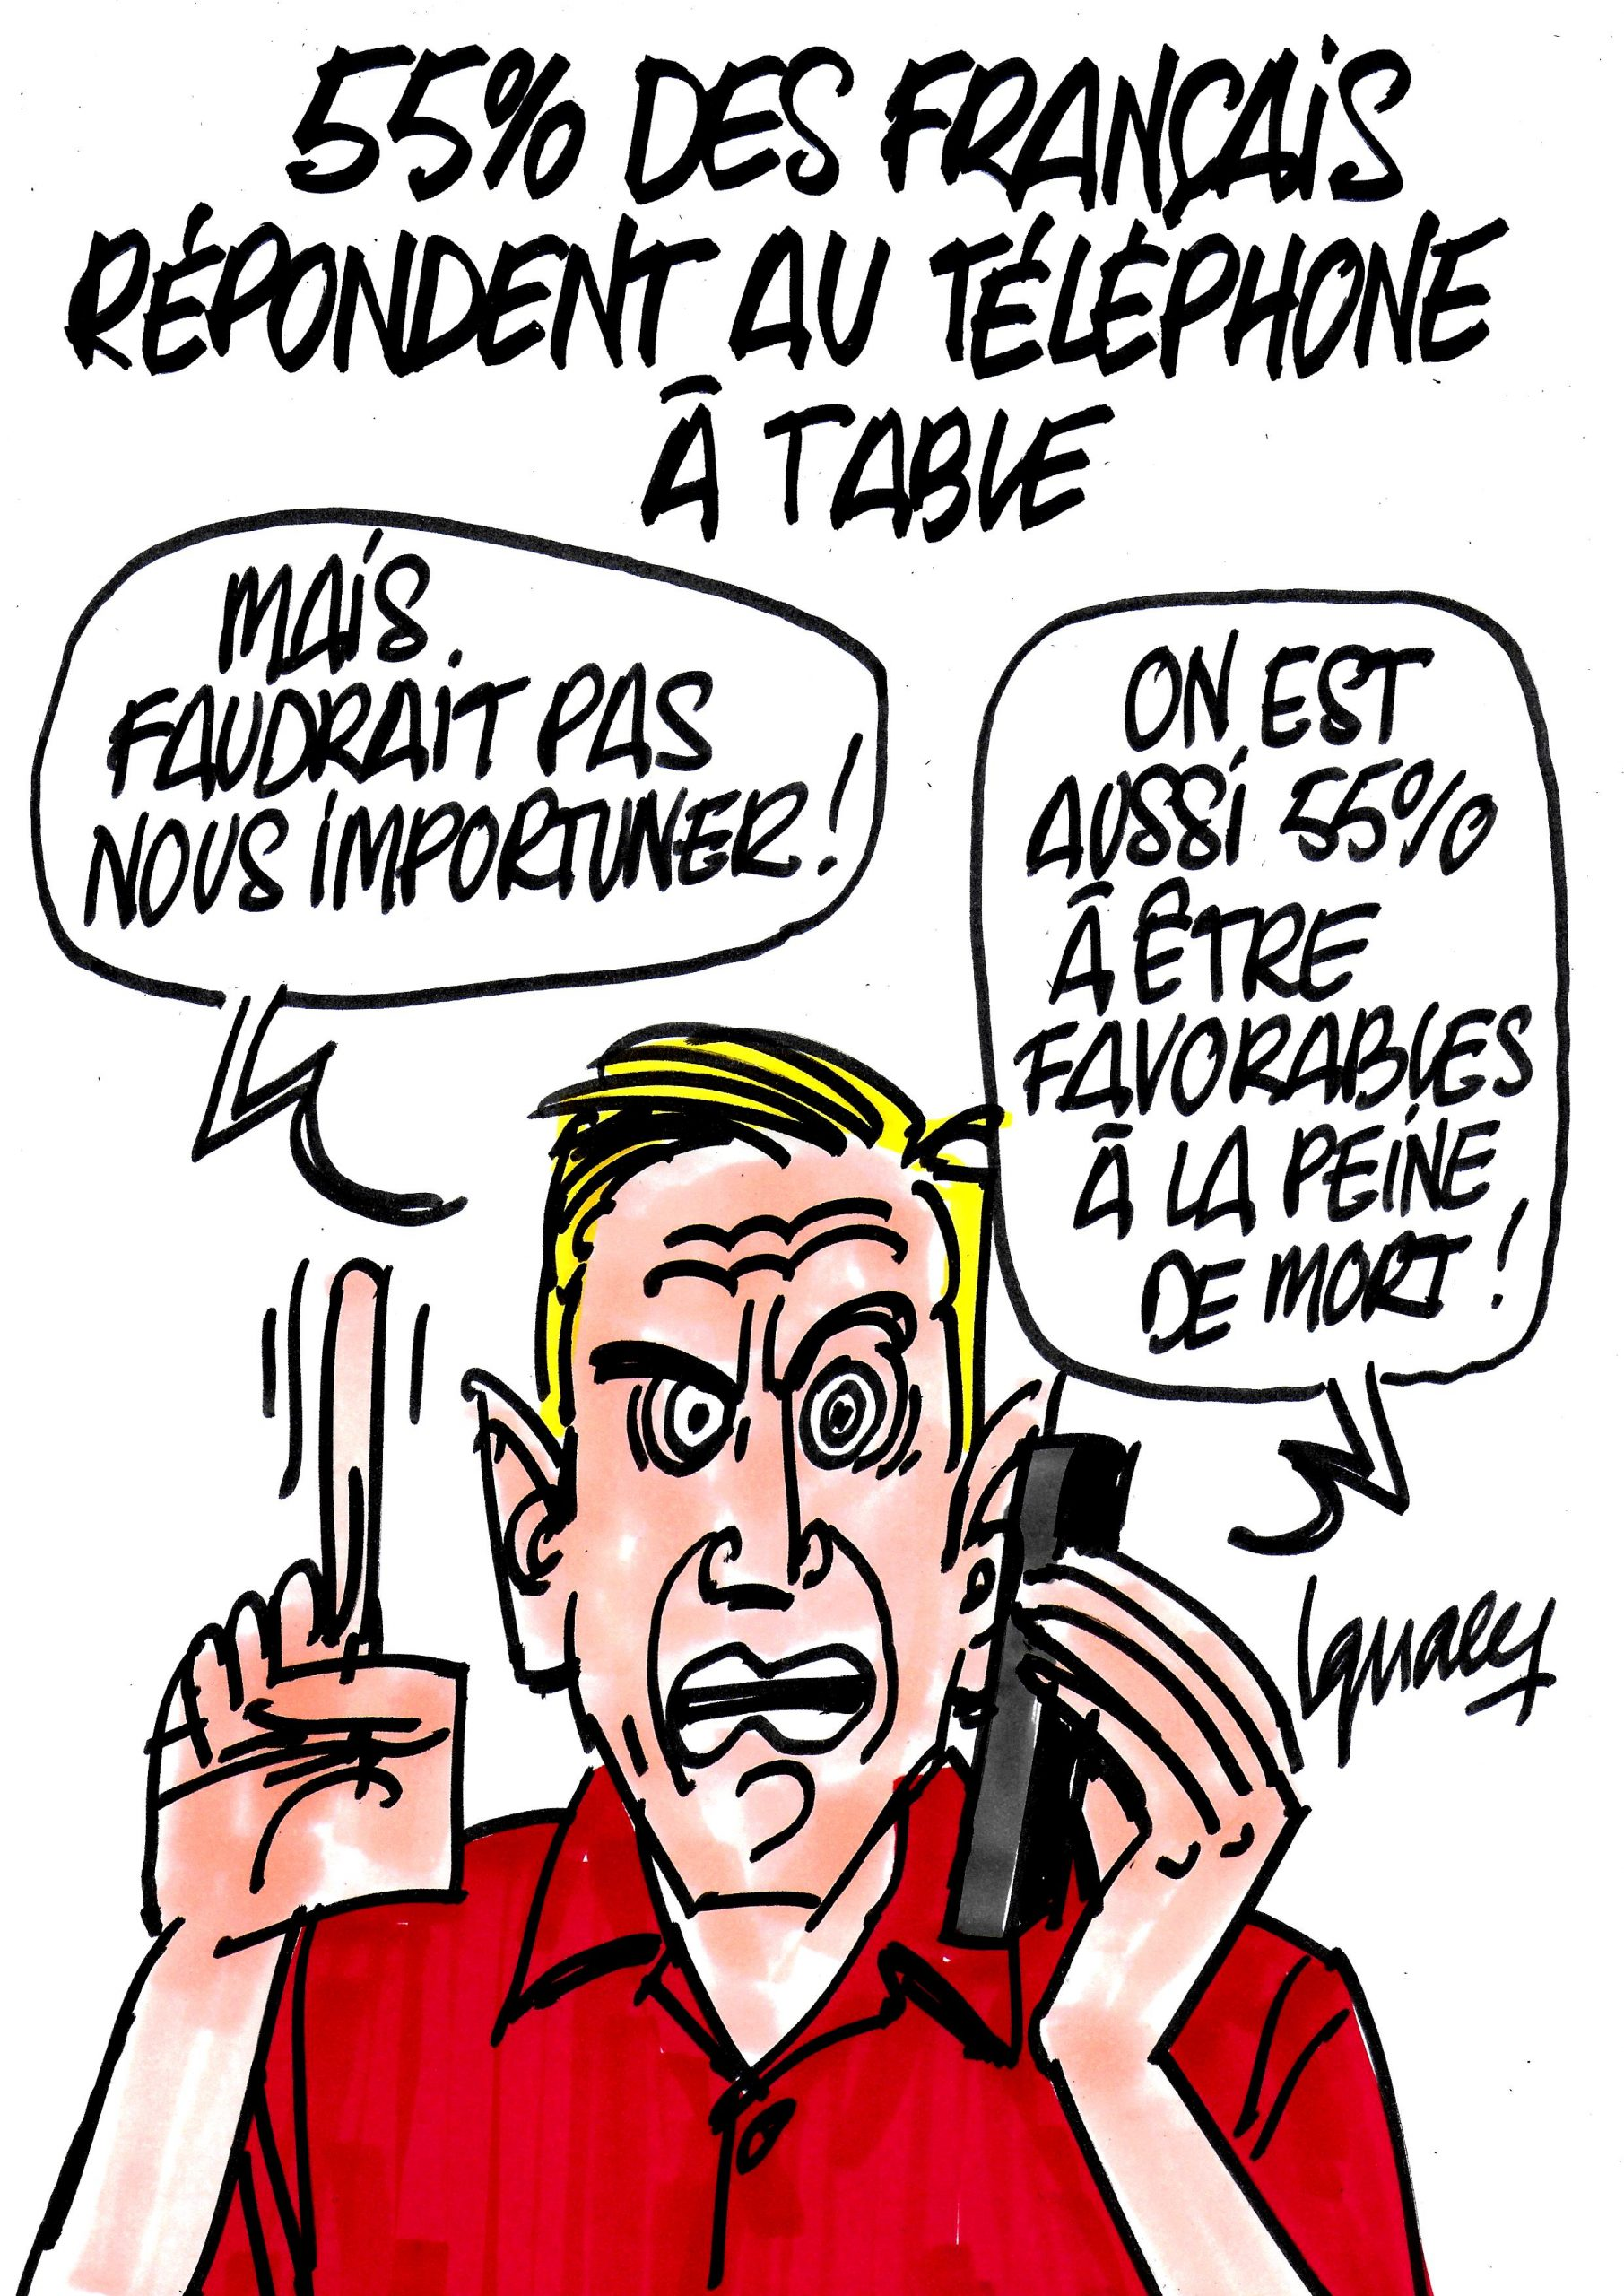 ignace_francais_telephone_a_table_sondage-mpi